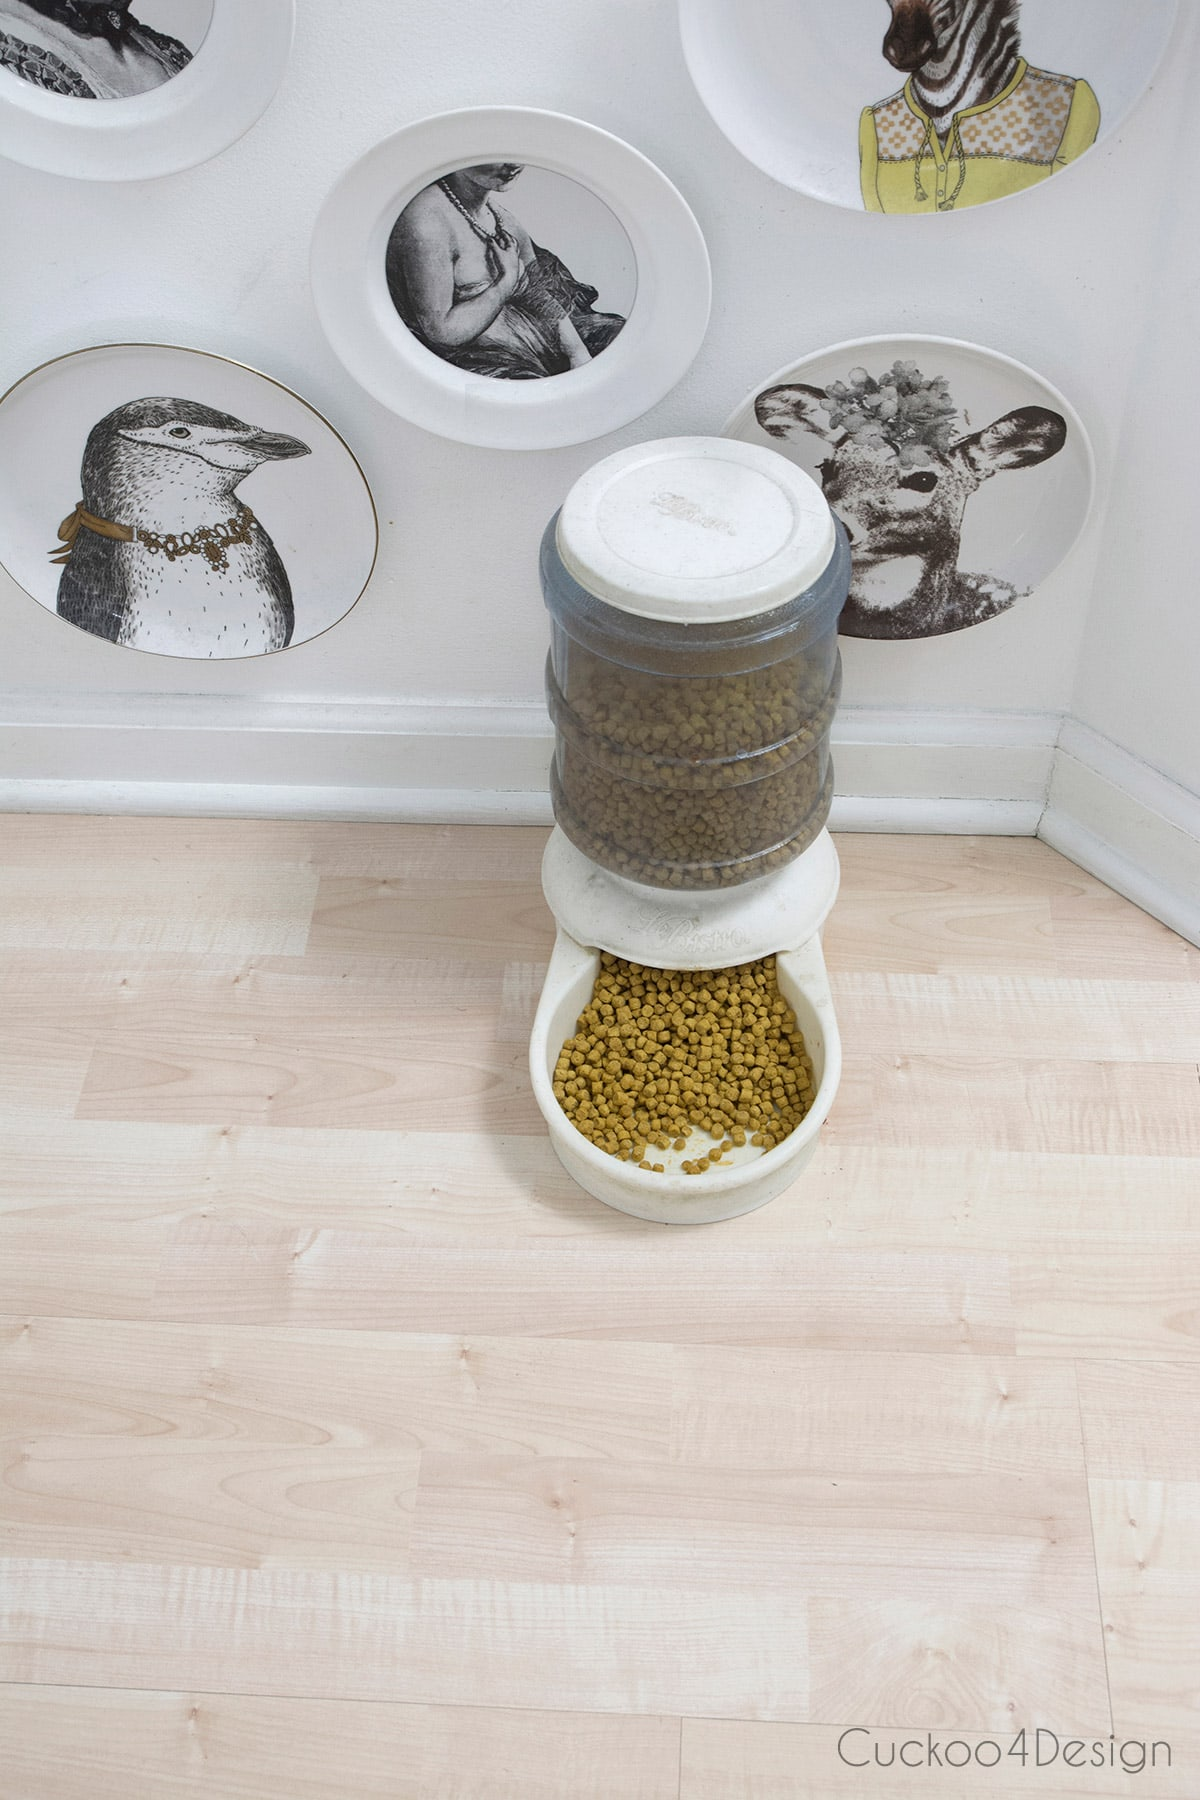 cleaned pet food bowl mess after using BISSELL crosswave pet pro